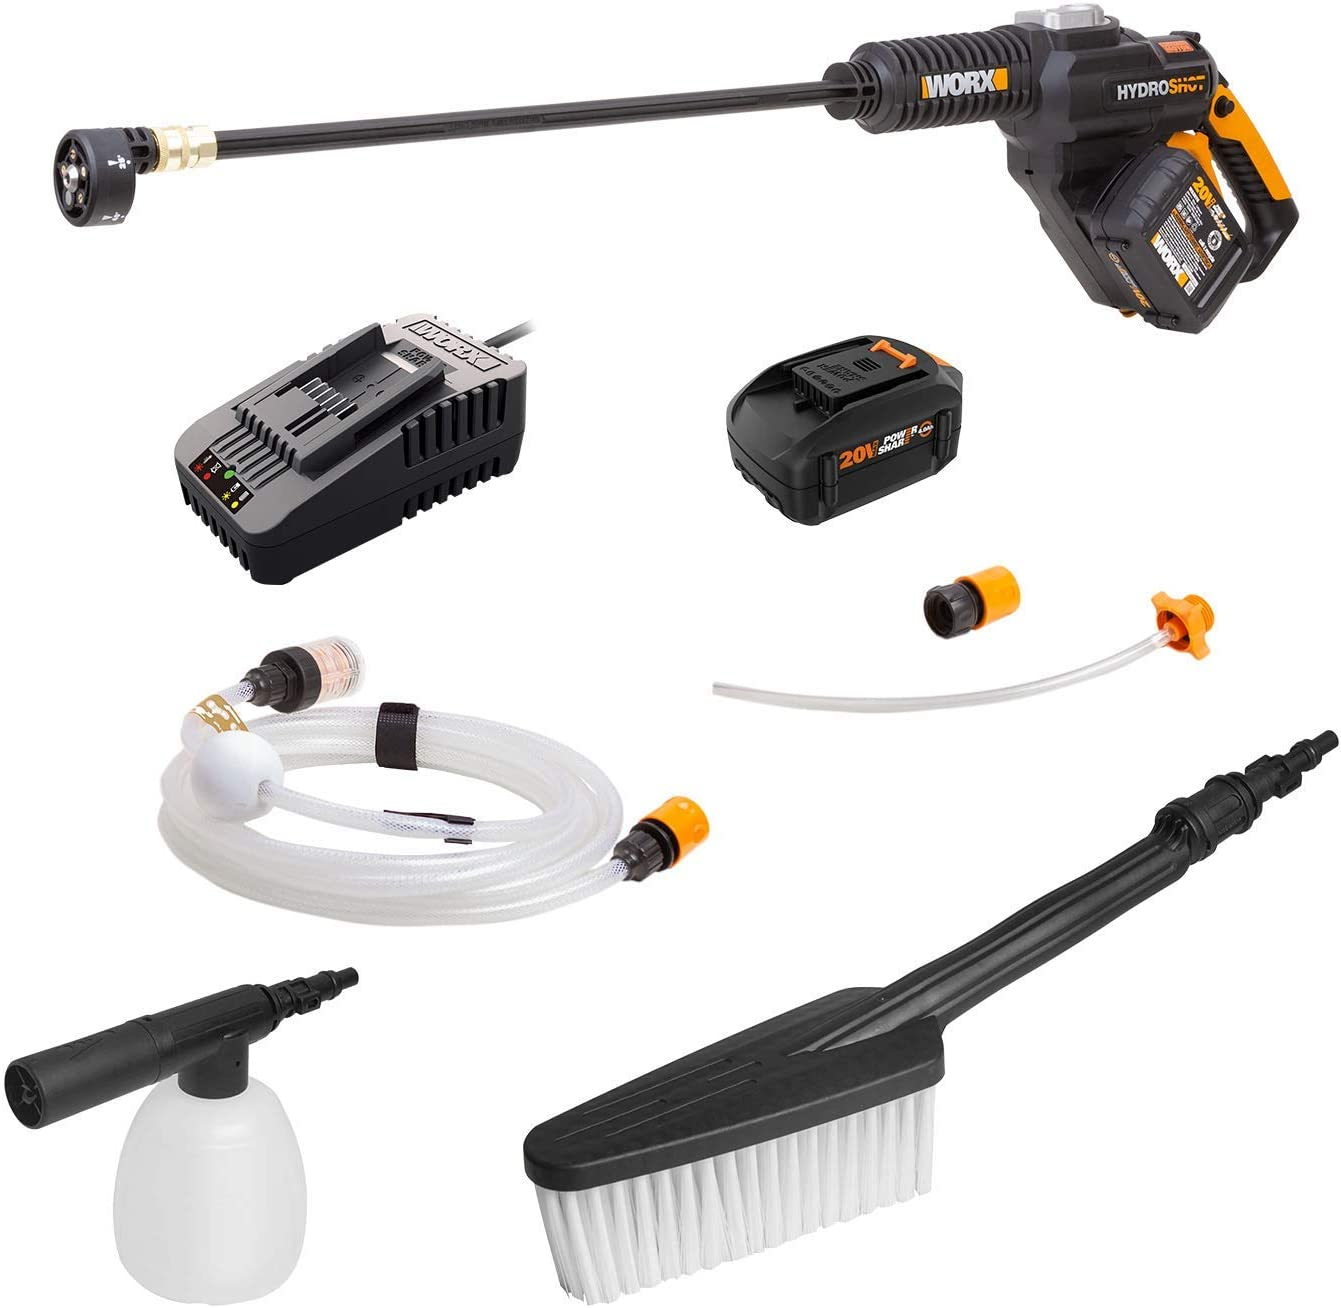 WORX WG630.2 20V Cordless Hydroshot Brushless High Flow Portable Power Cleaner with Soap Bottle & Brush, 4.0Ah Battery & Charger Included